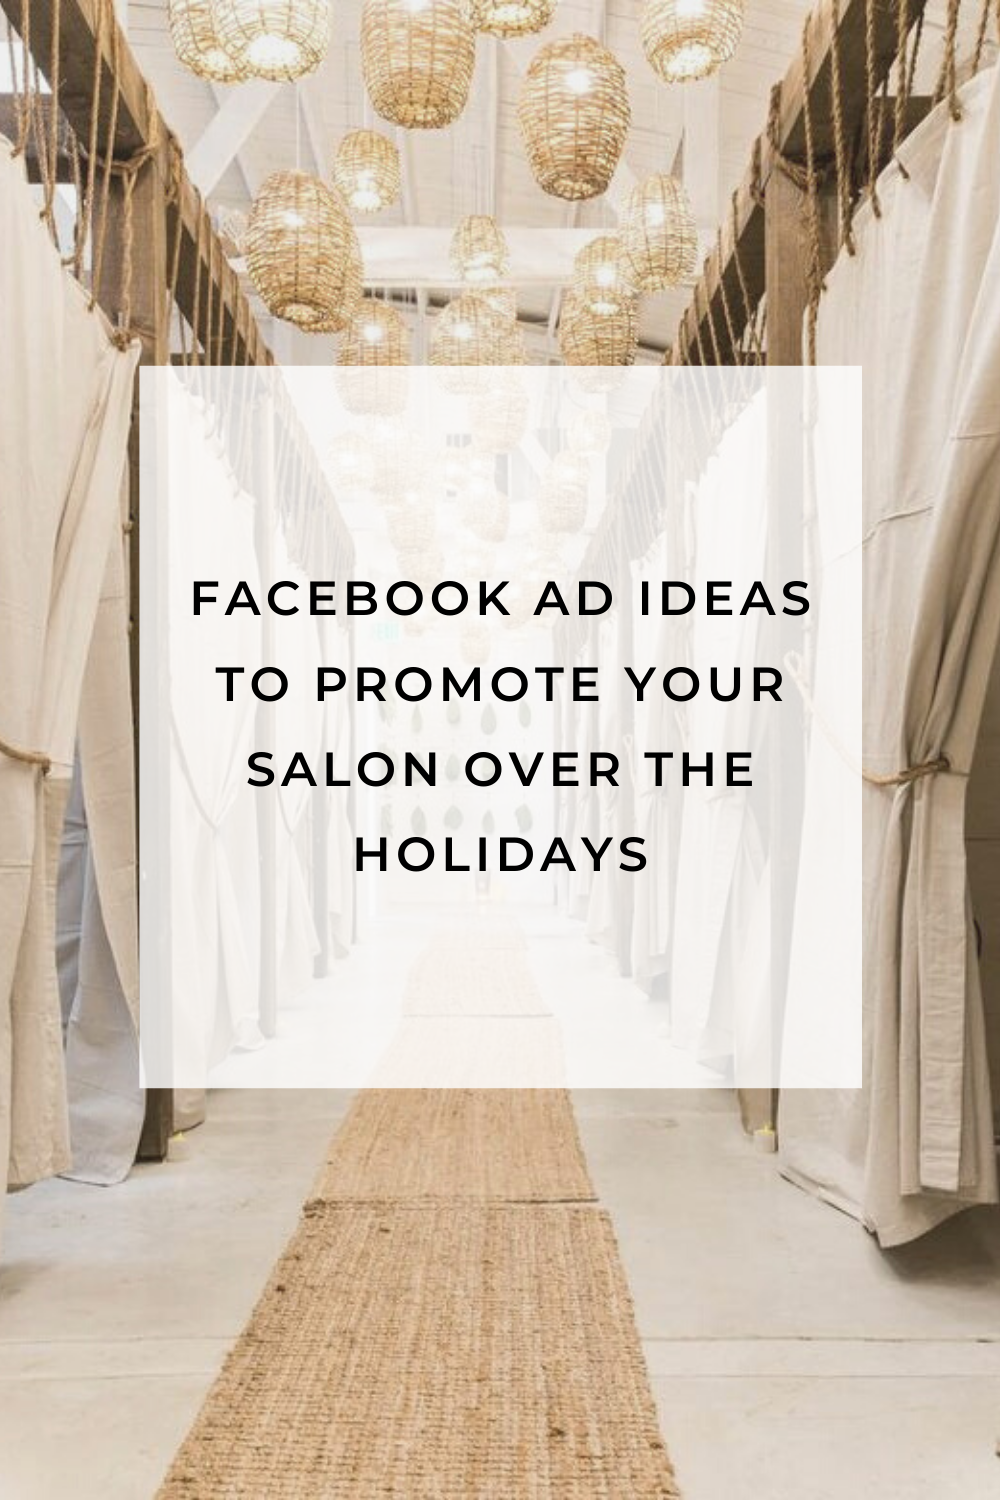 17 Facebook ad ideas to promote your salon over the holidays